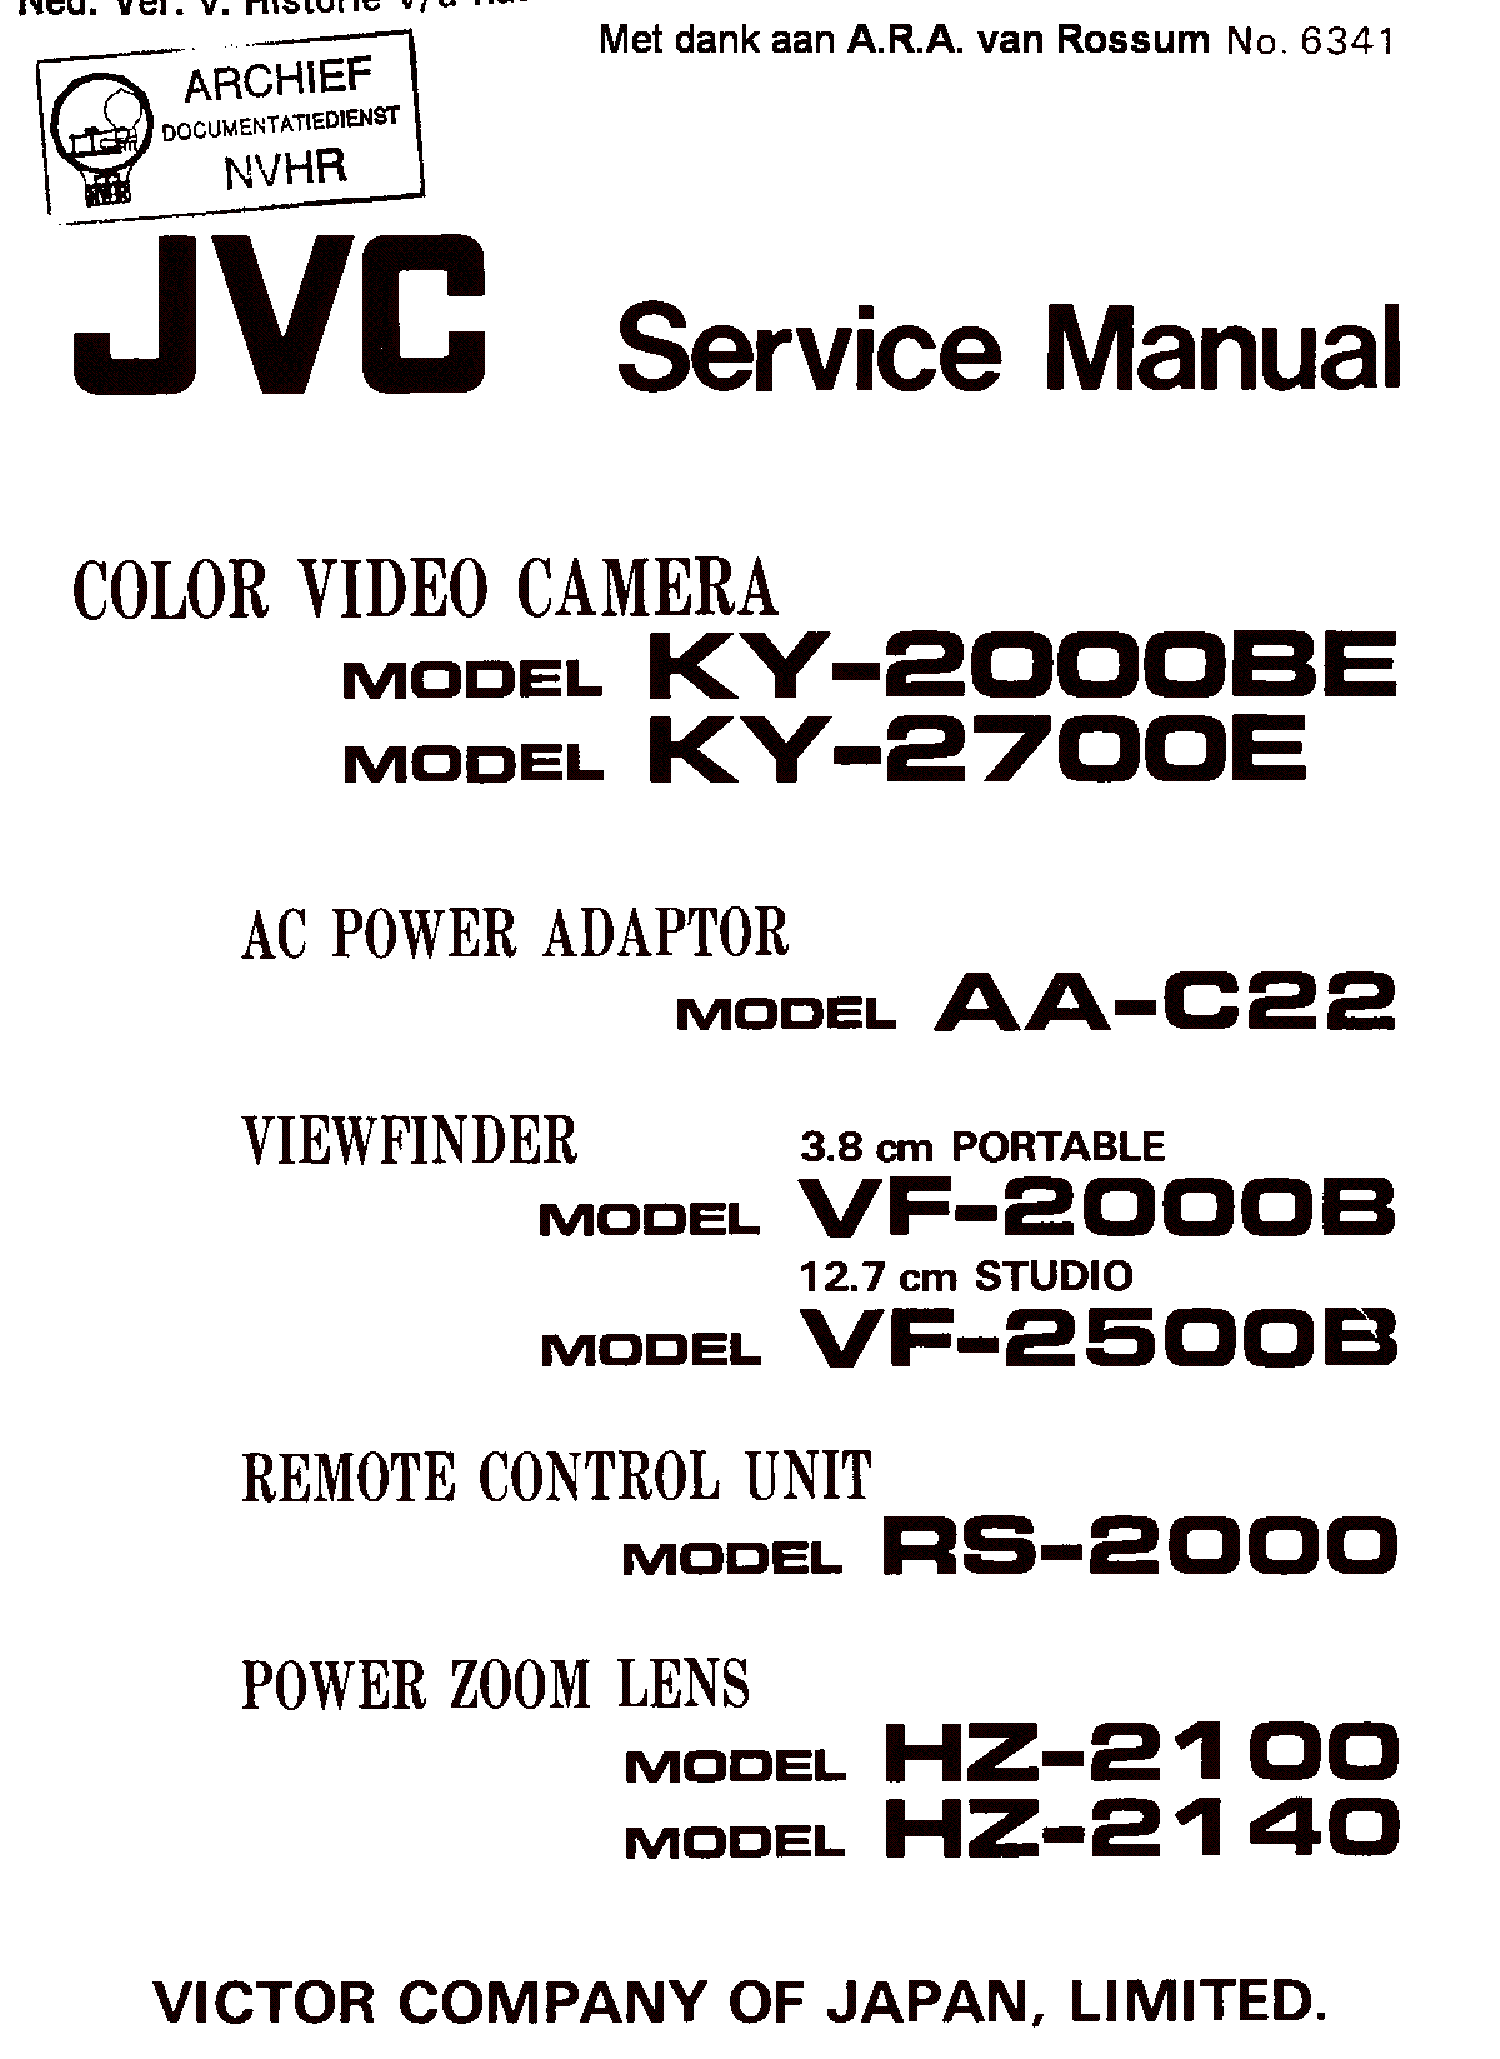 JVC KY-2000BE 2700EVF-2000 2500-B RS-2000 HZ-2100 2140 COLOR